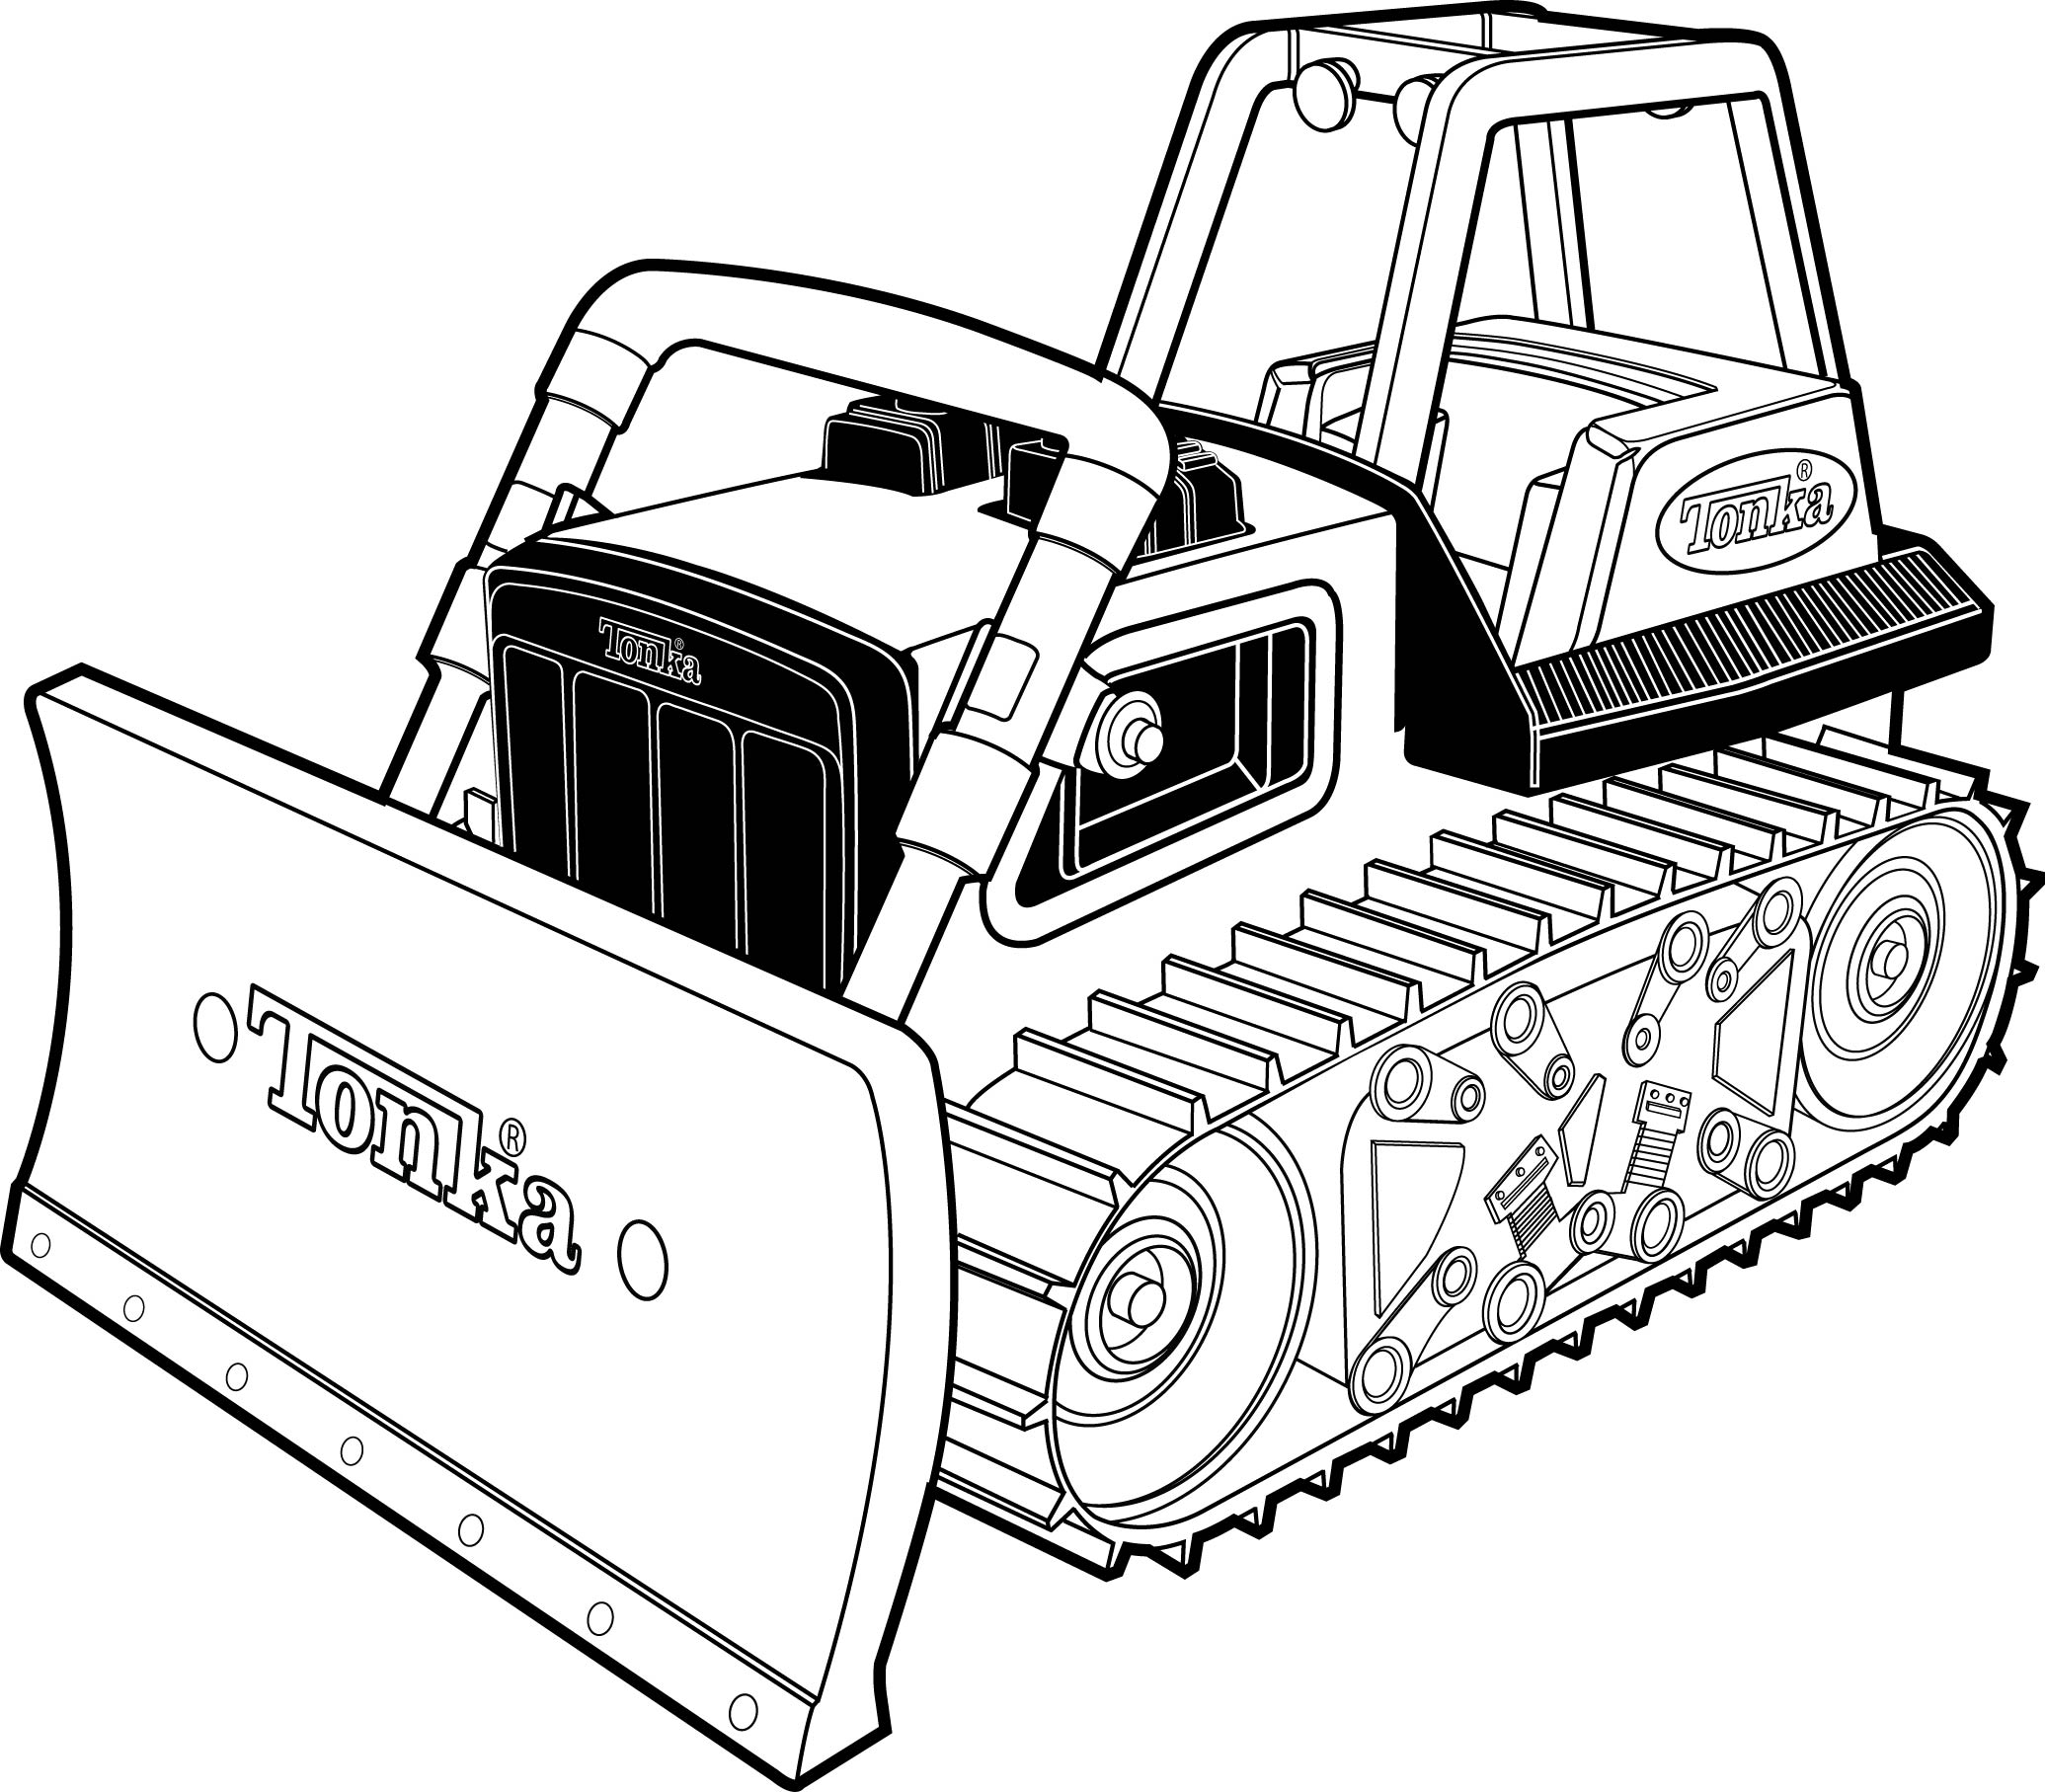 Tonka Truck Technical Illustration